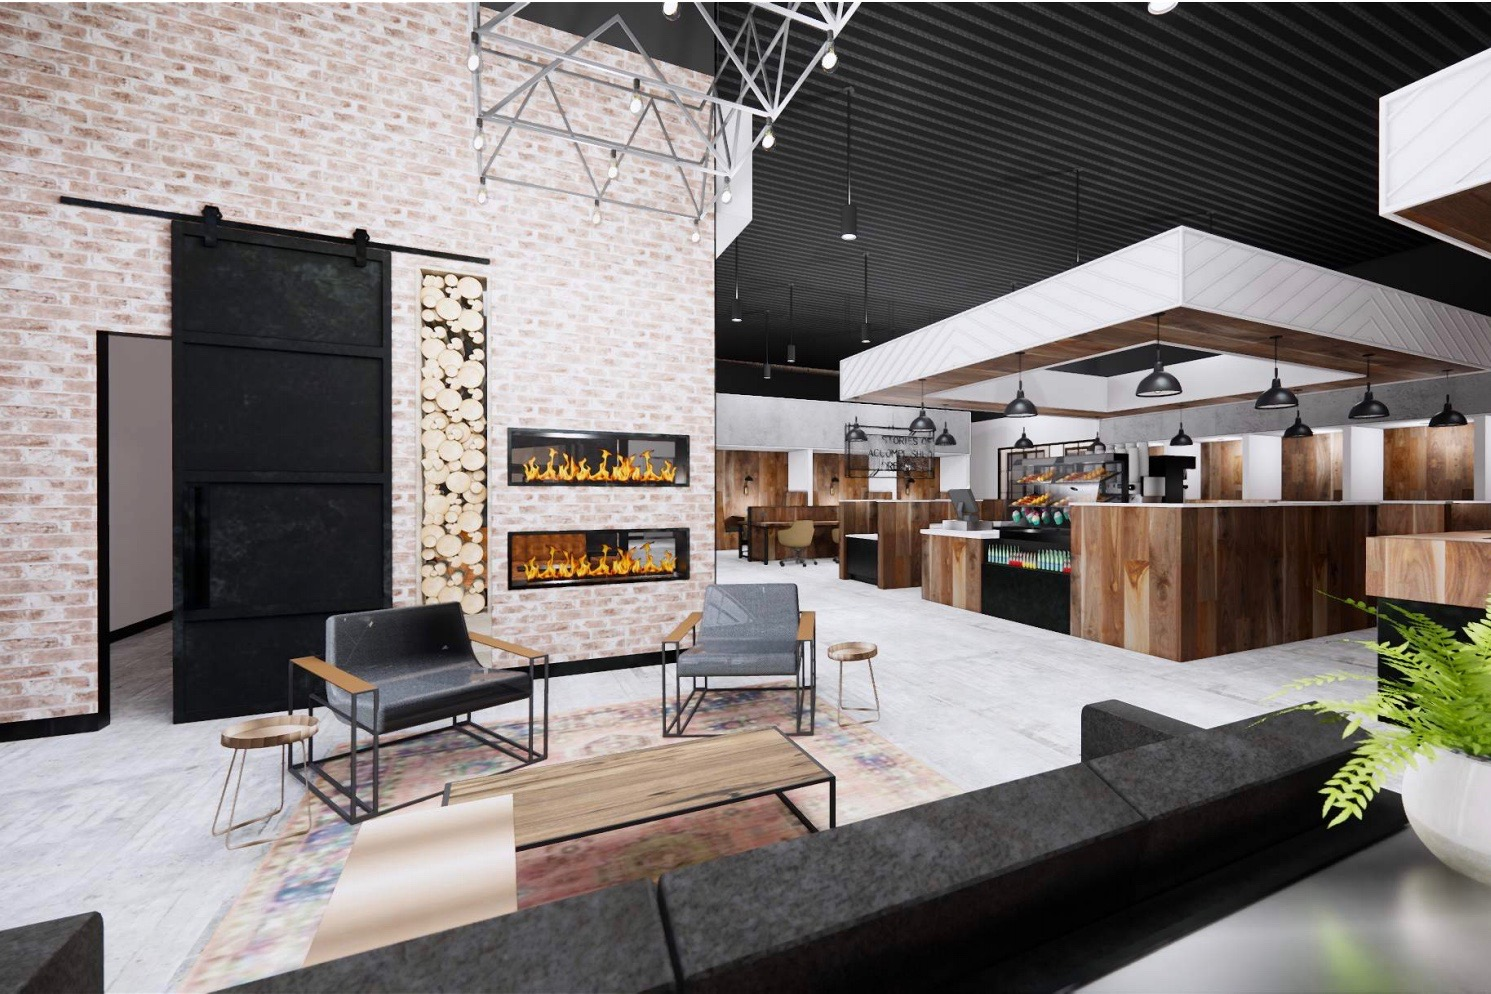 Rendering of fireplace lounge at Roam Lenox coming Spring 2020